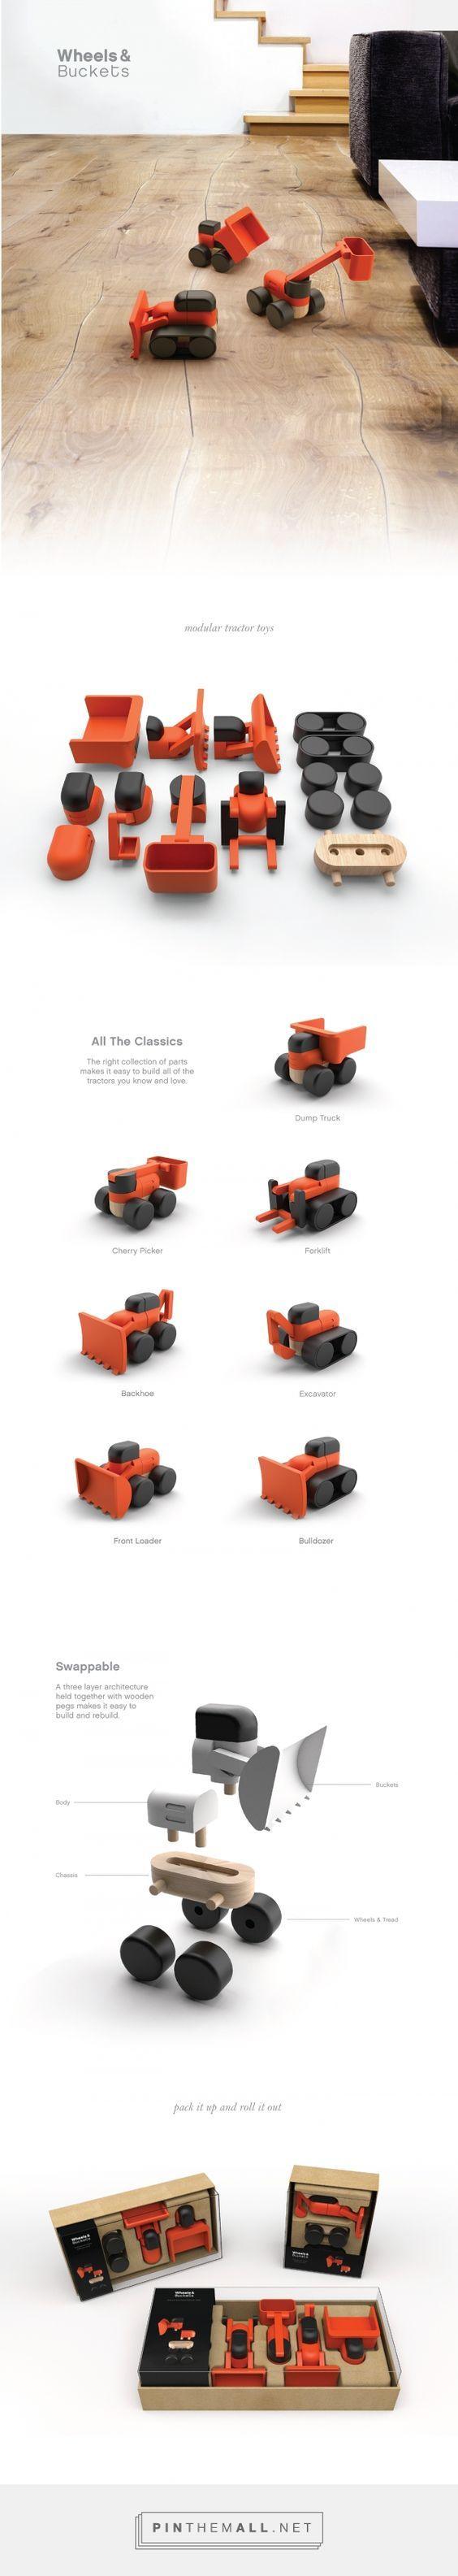 Industrial design, toy design and packaging for Wheels & Buckets on…: